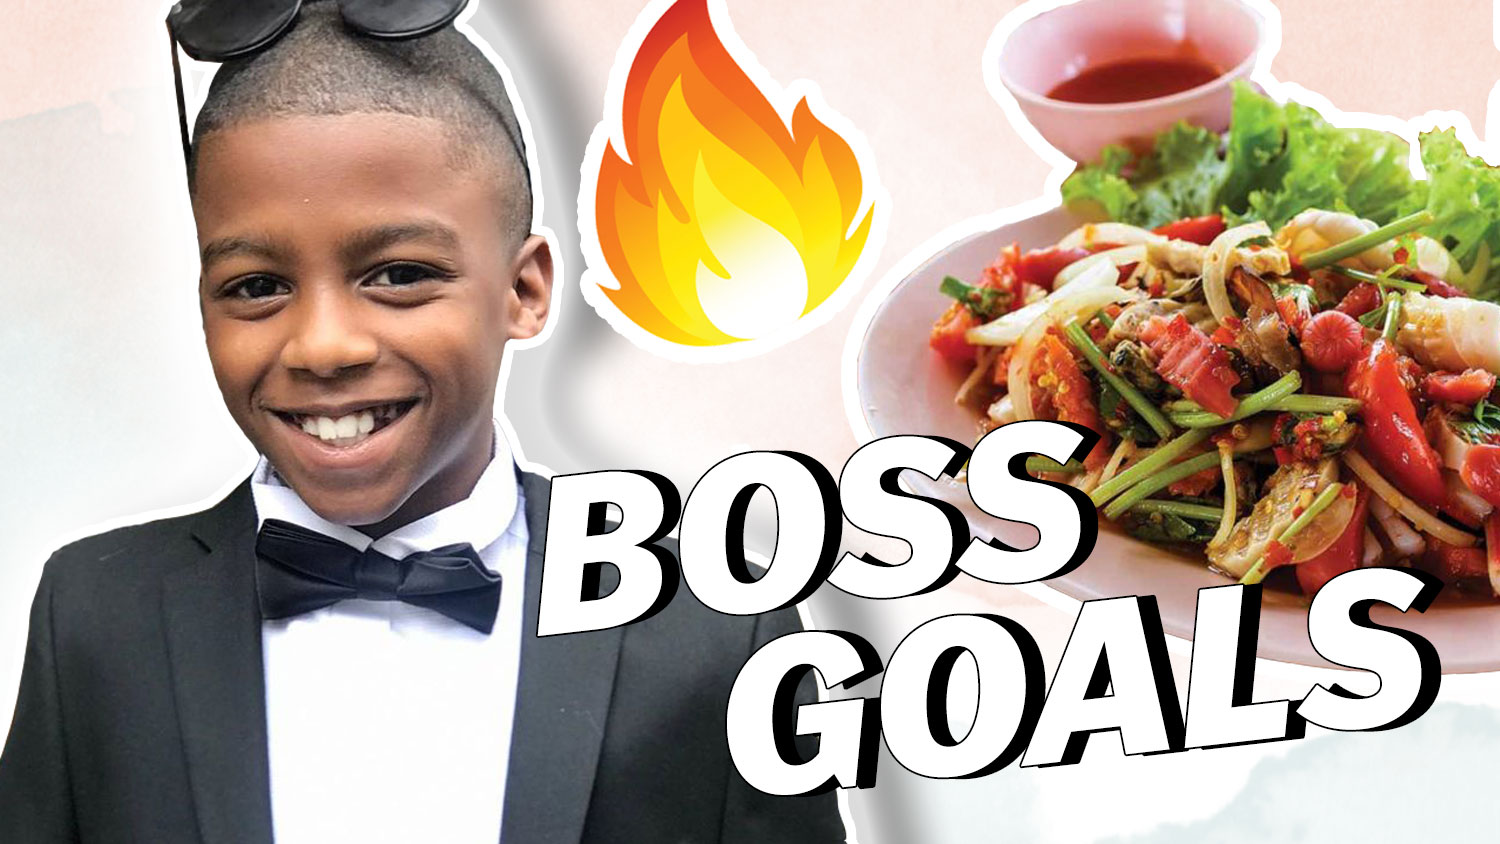 11 Year Old CEO Opens His Own Vegan Restaurant